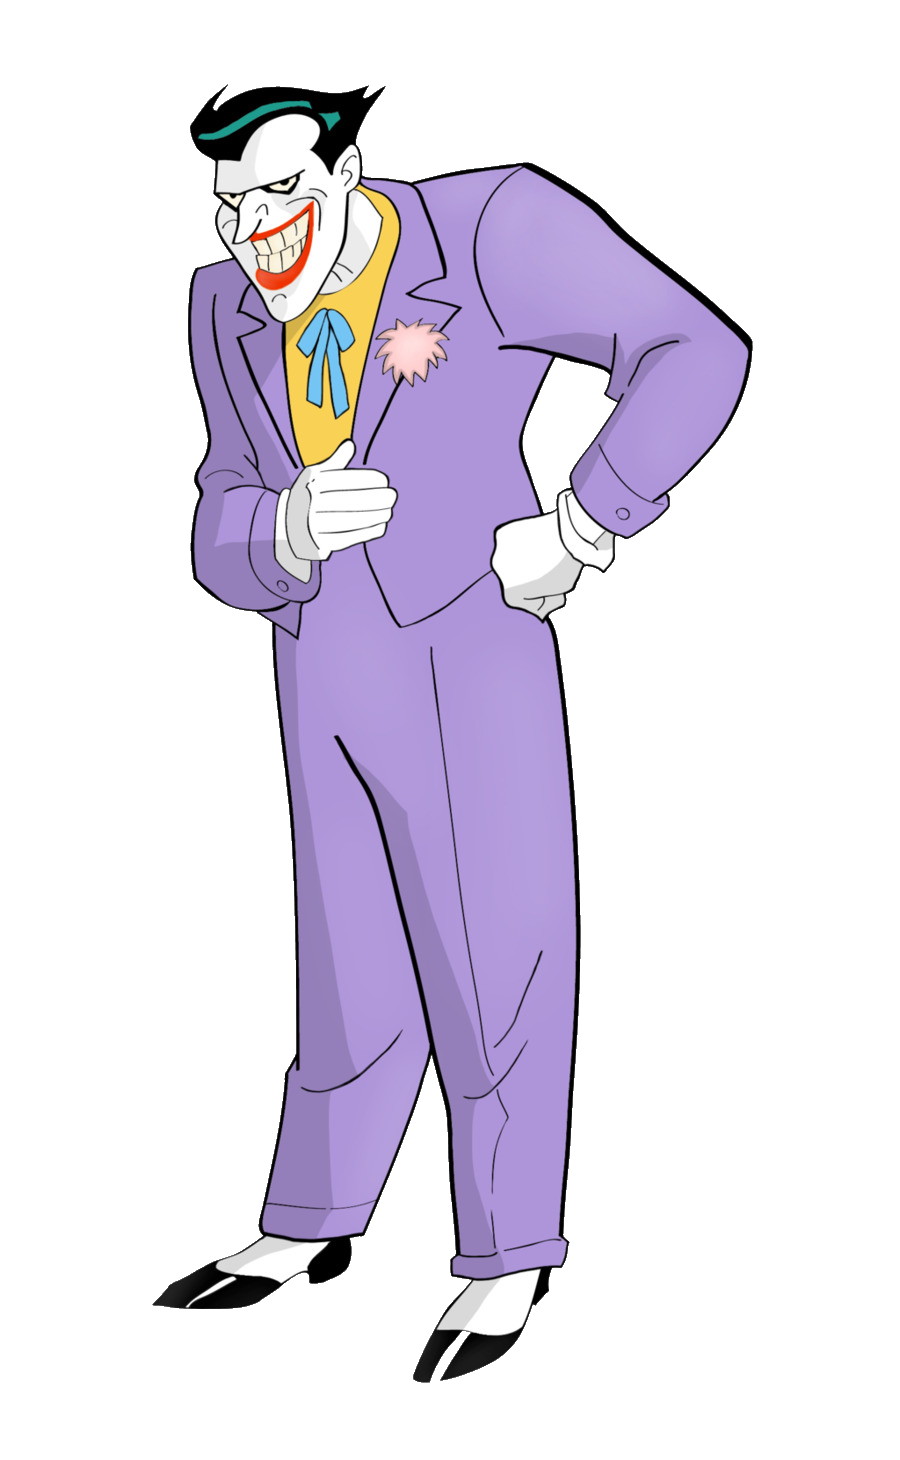 joker animated universe villains wiki fandom #21111